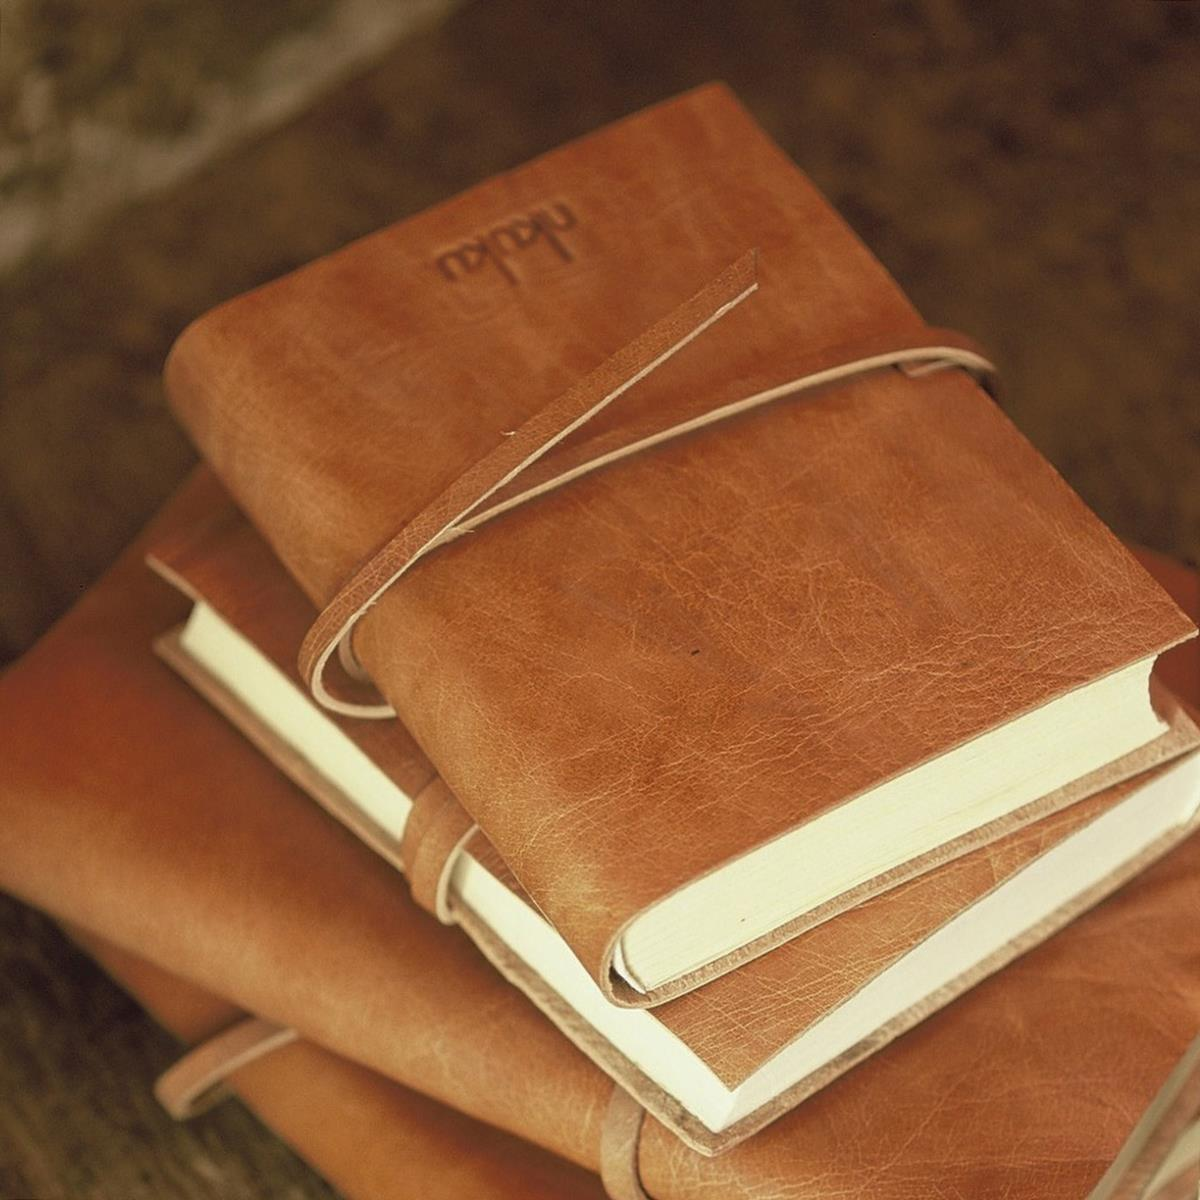 Leather Book Cover Photo Tutorial : Timbo s creations diy bookbinding